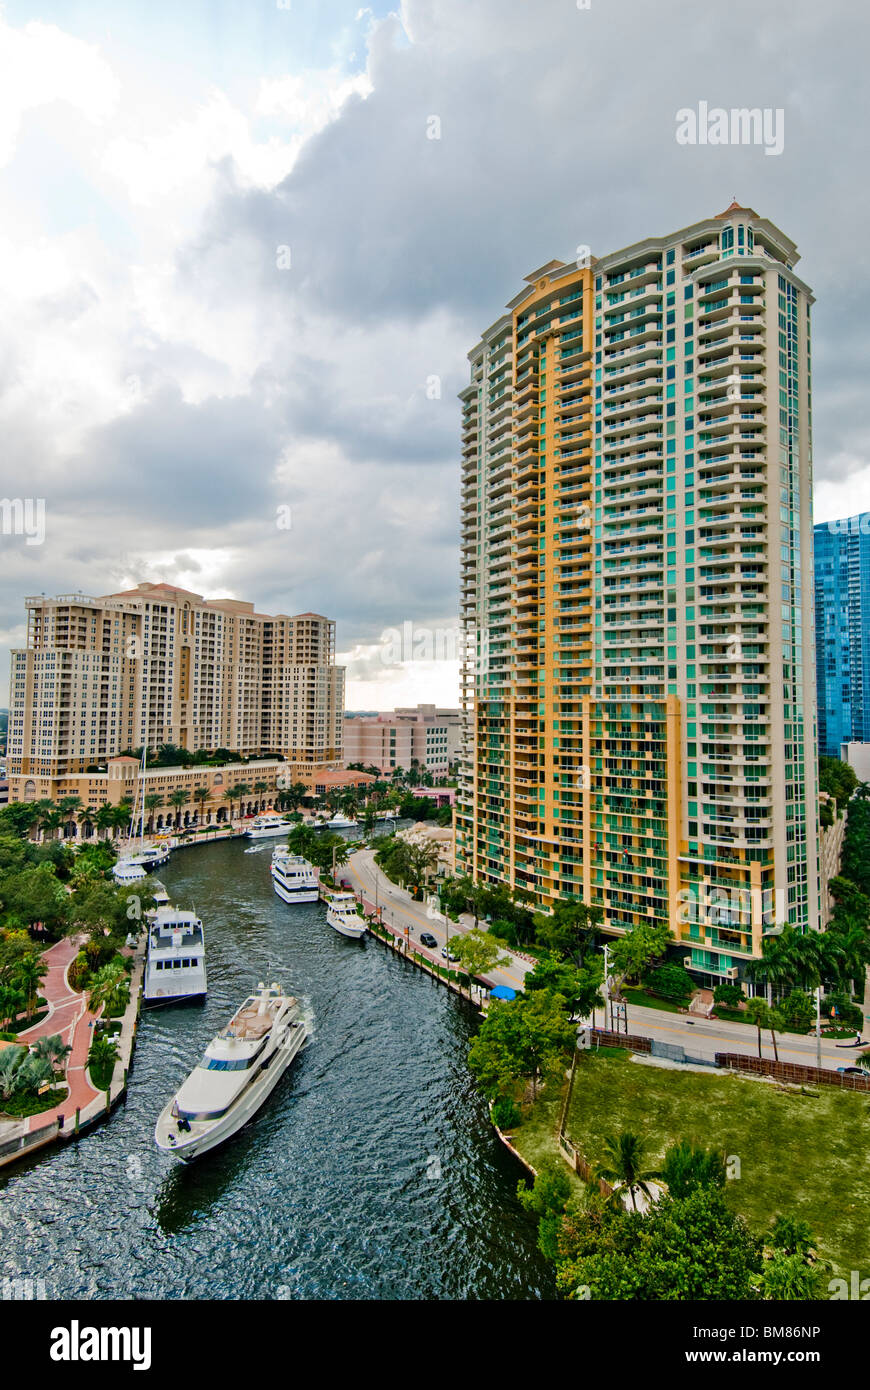 The New River passes through the city center of Fort Lauderdale, Florida, USA Stock Photo